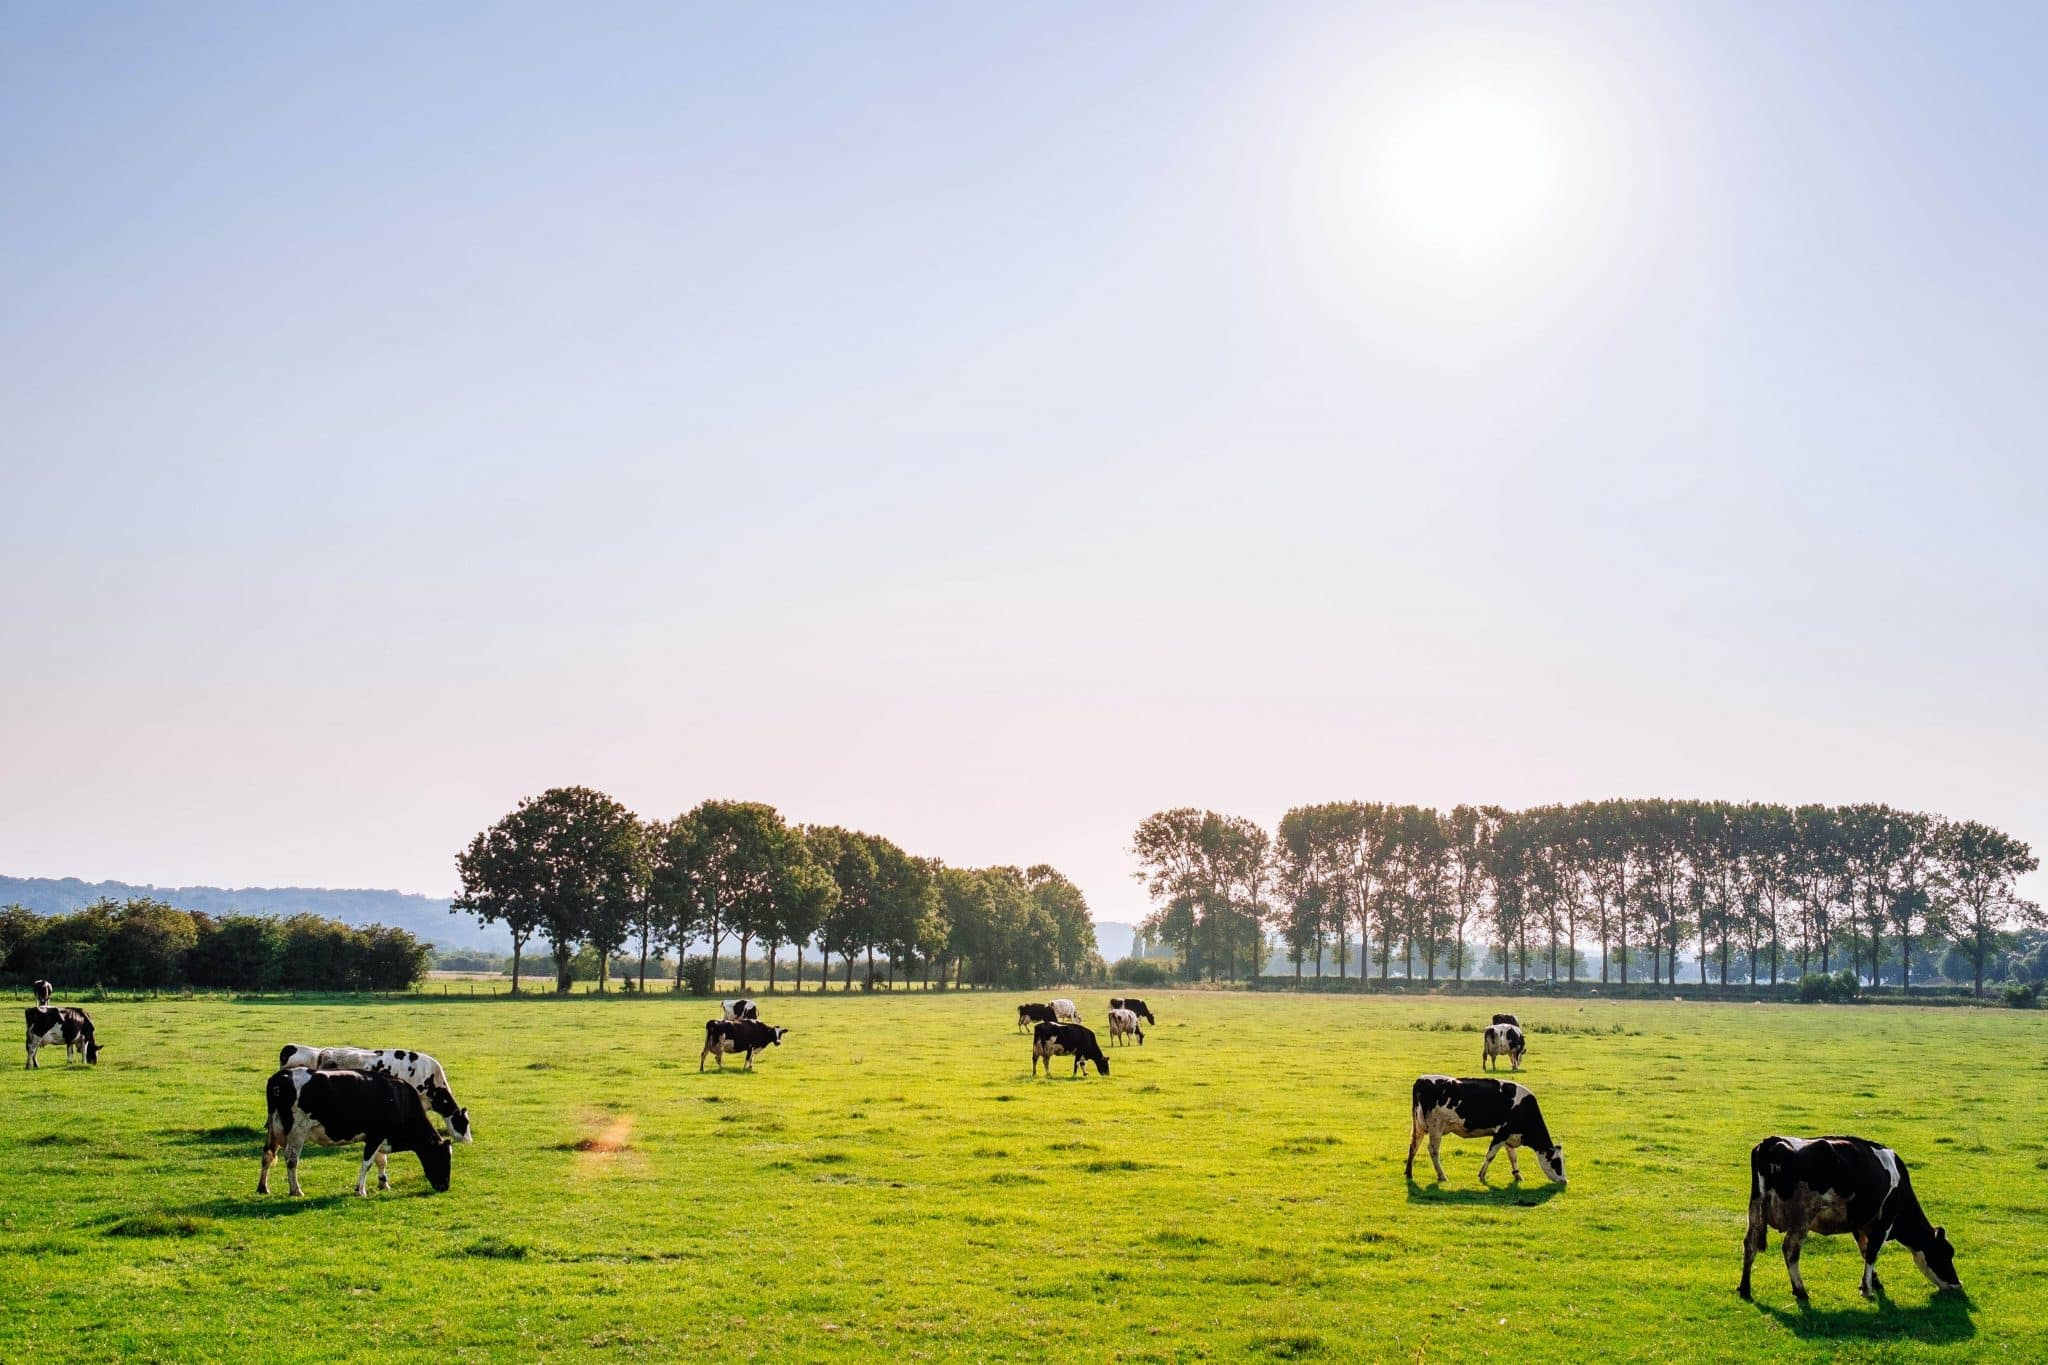 The 2021 Food&Agri ecosystem of the Netherlands